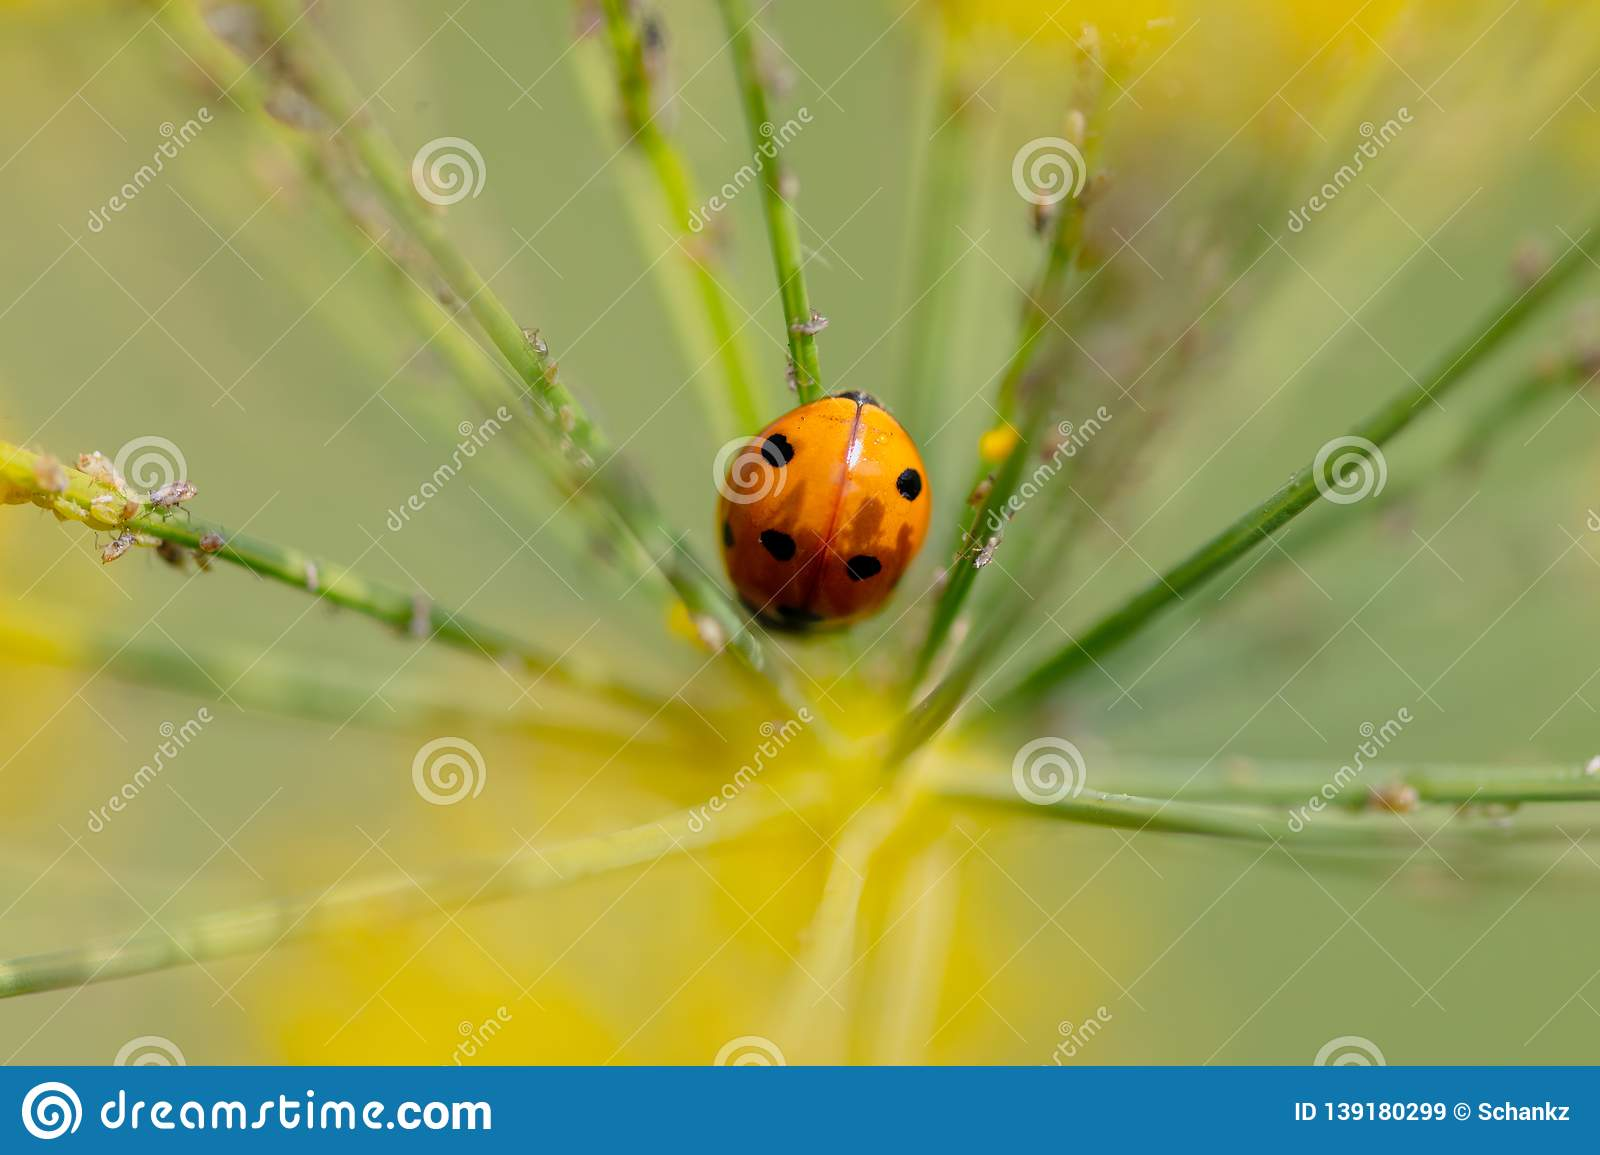 Ladybug on a plant in the summer